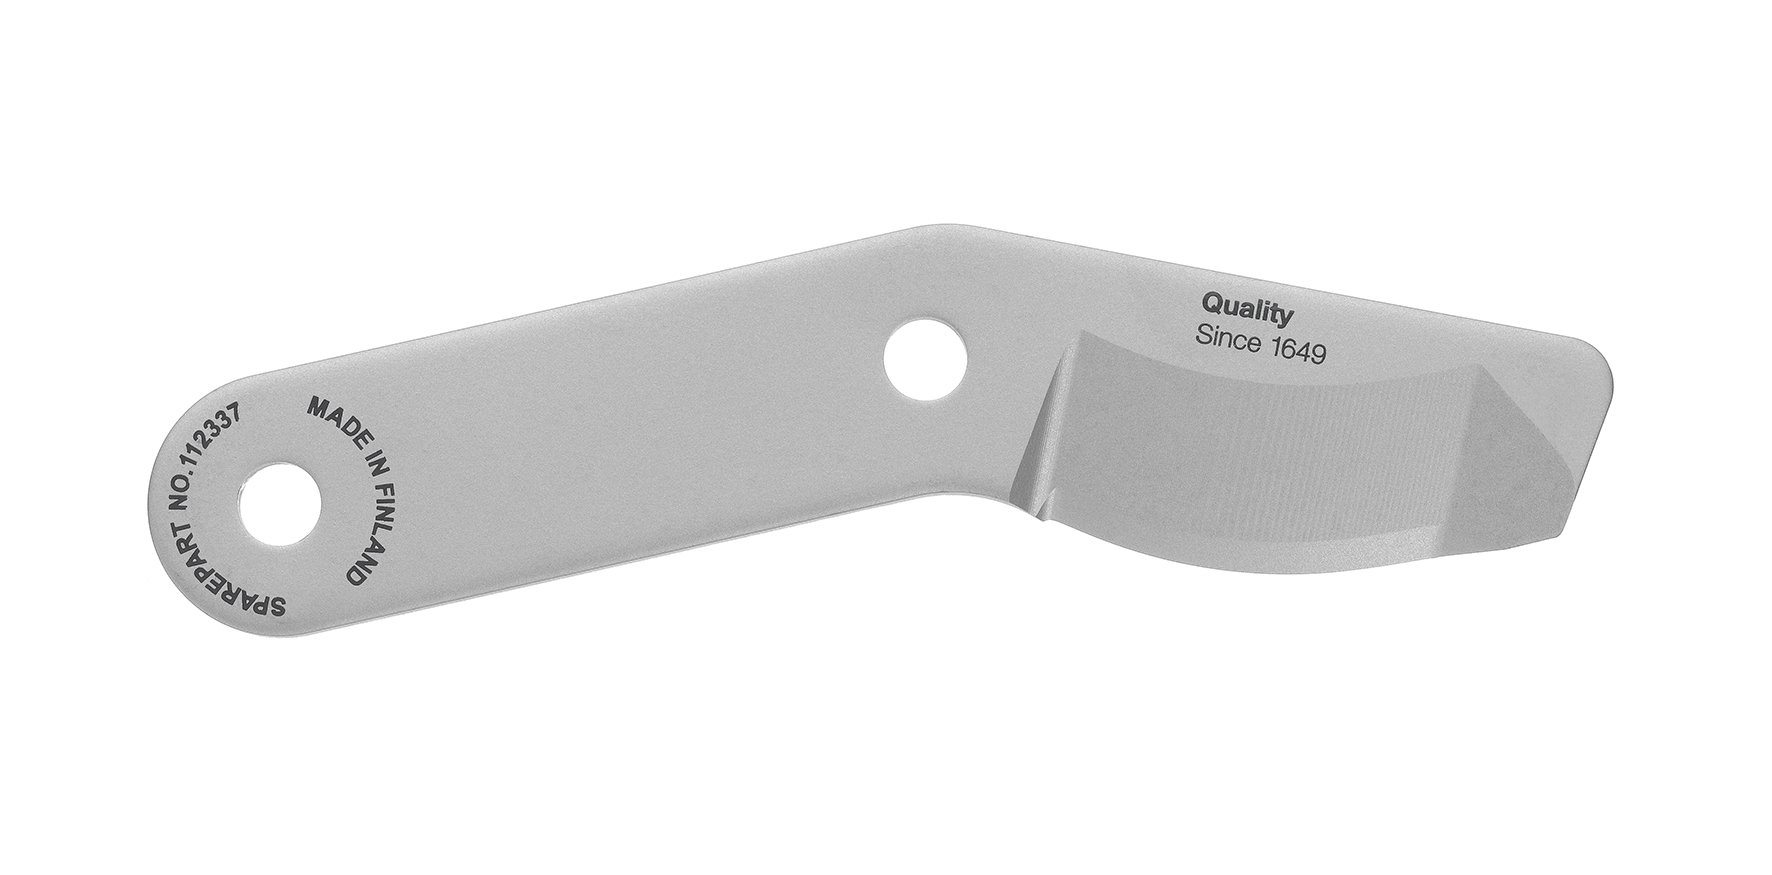 Lopper Replacement Parts : Fiskars replacement blade for lopper blades and